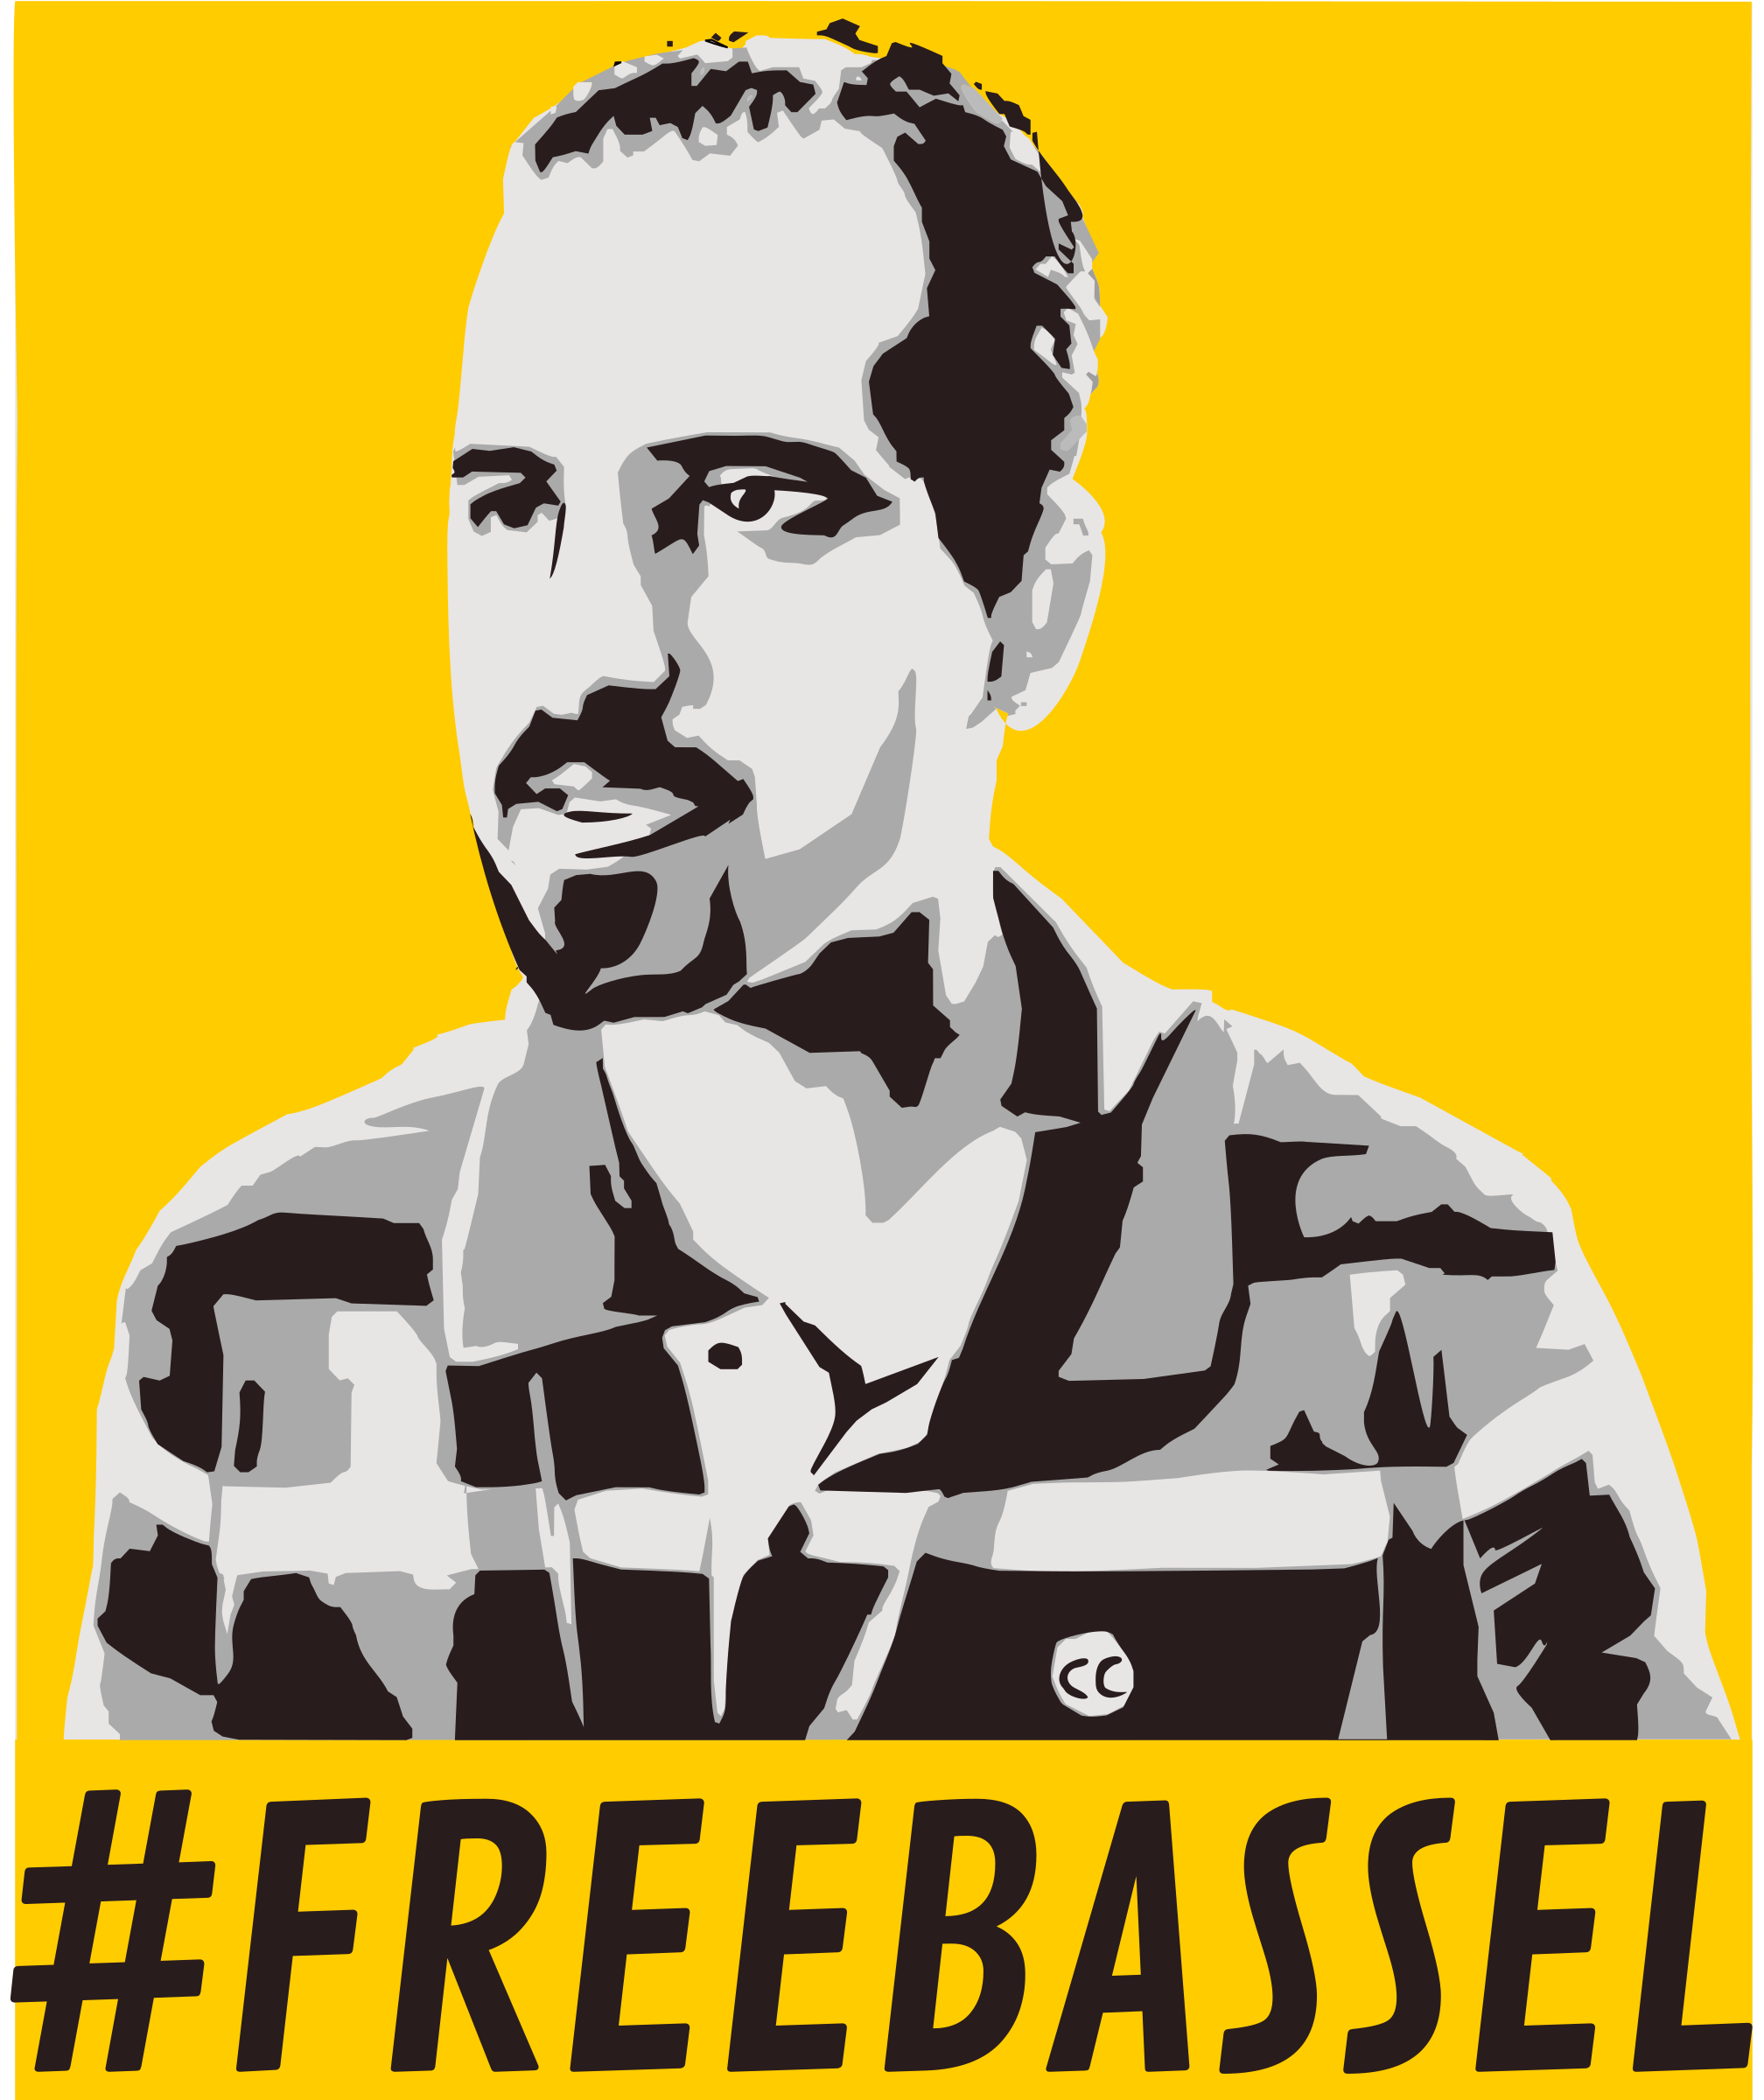 Freebassel yellow poster by dominiquechappard